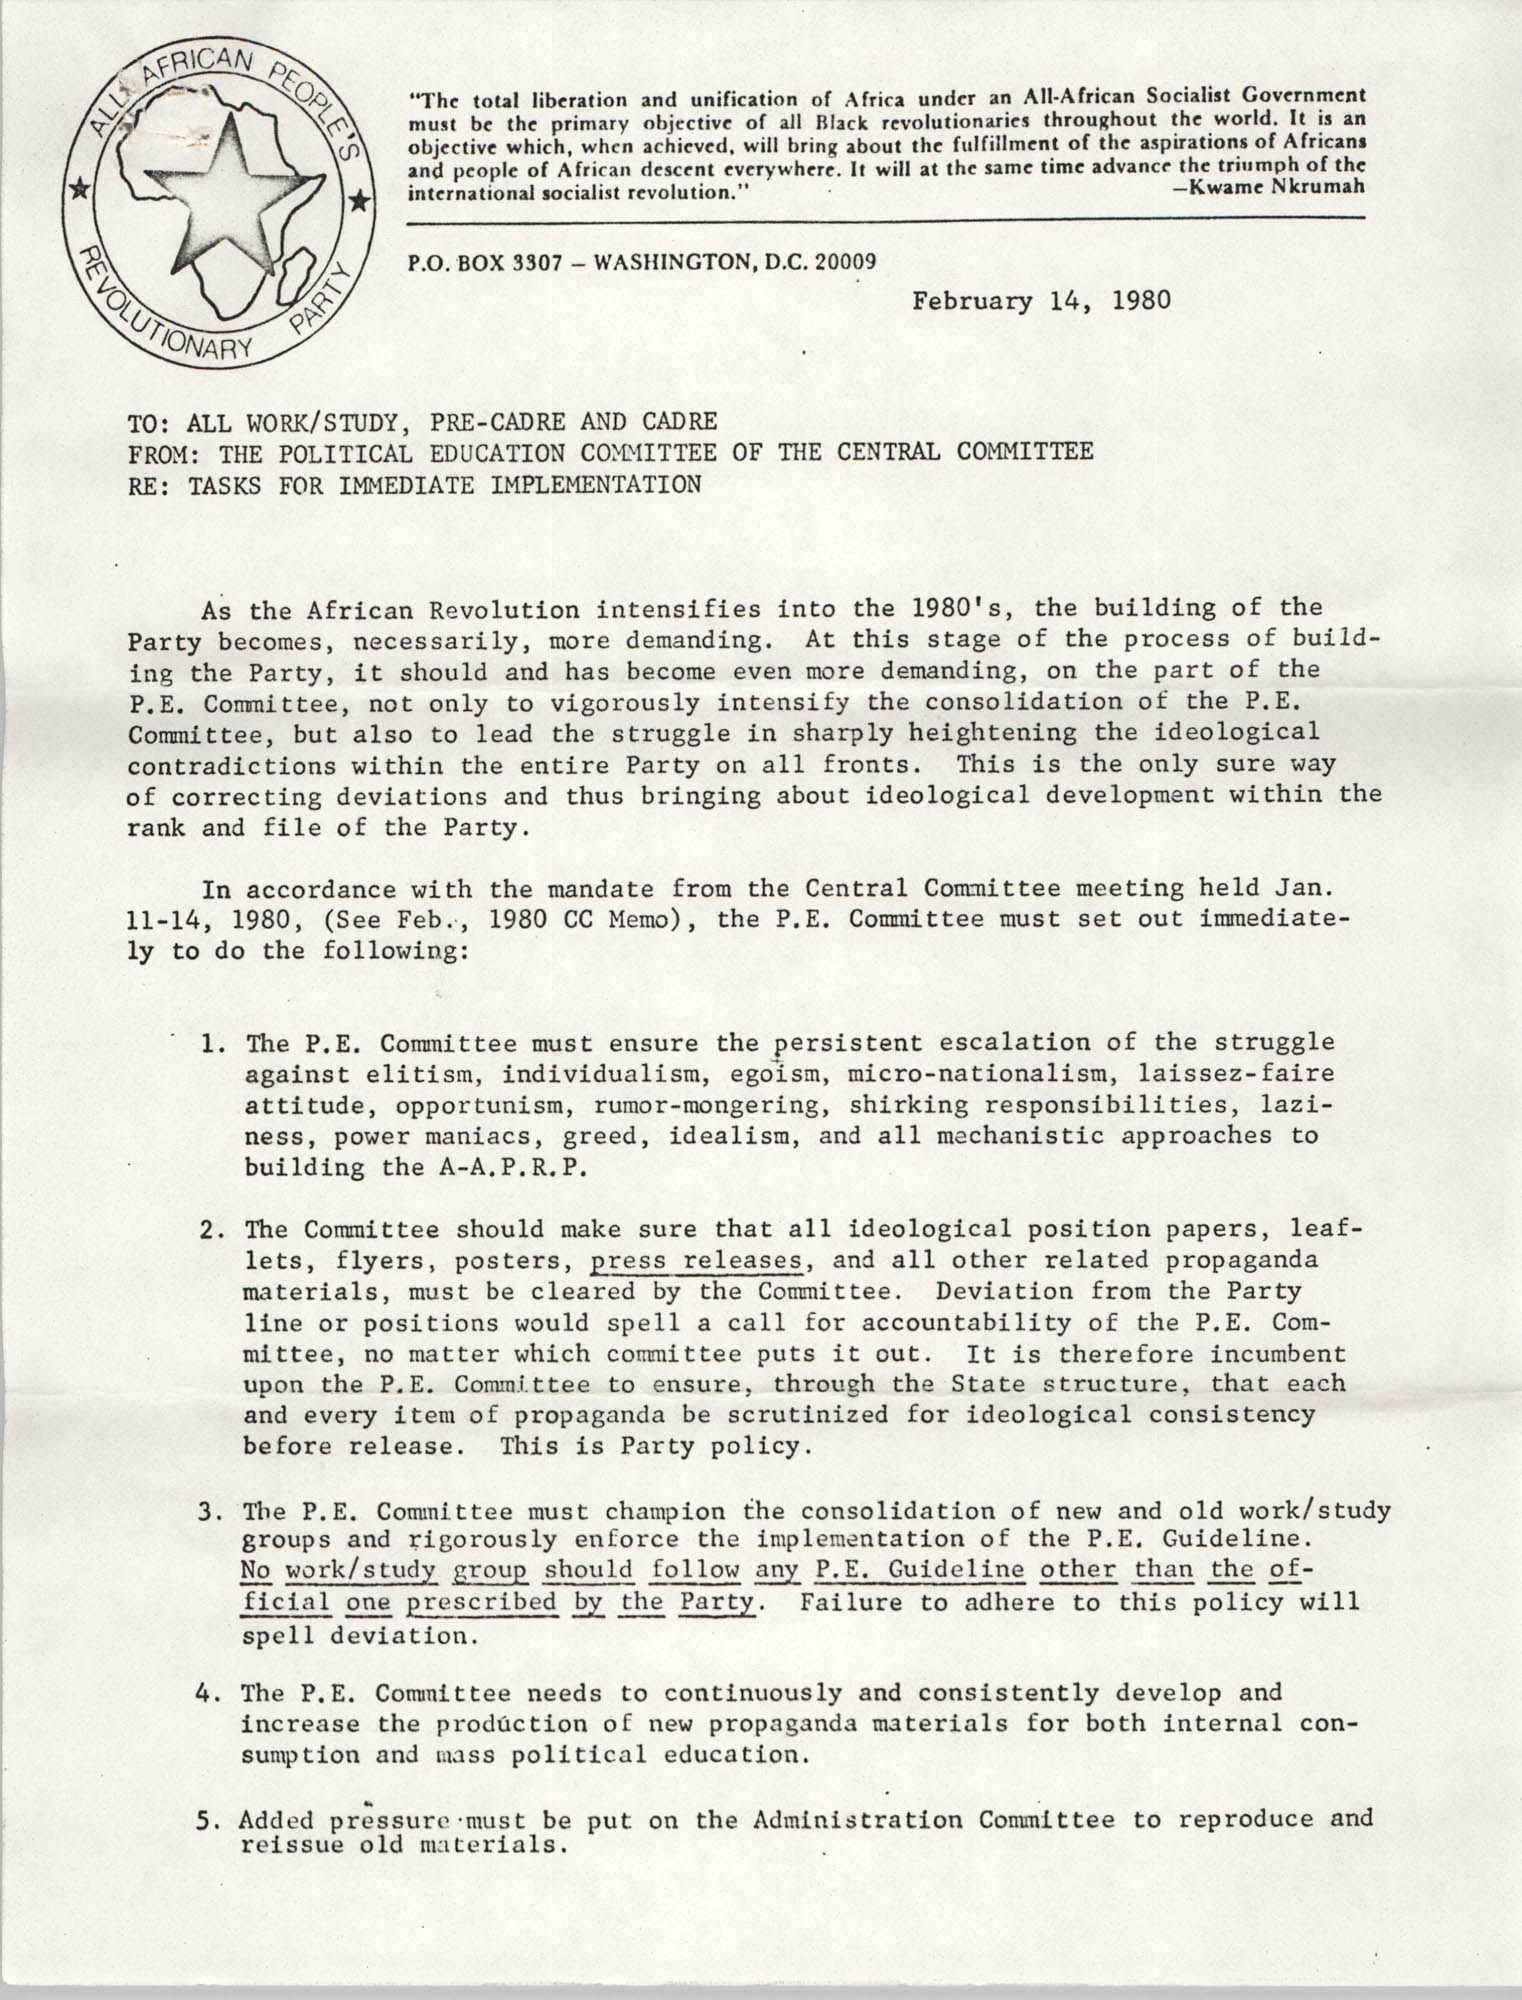 All African People's Revolutionary Party Memorandum, February 14, 1980